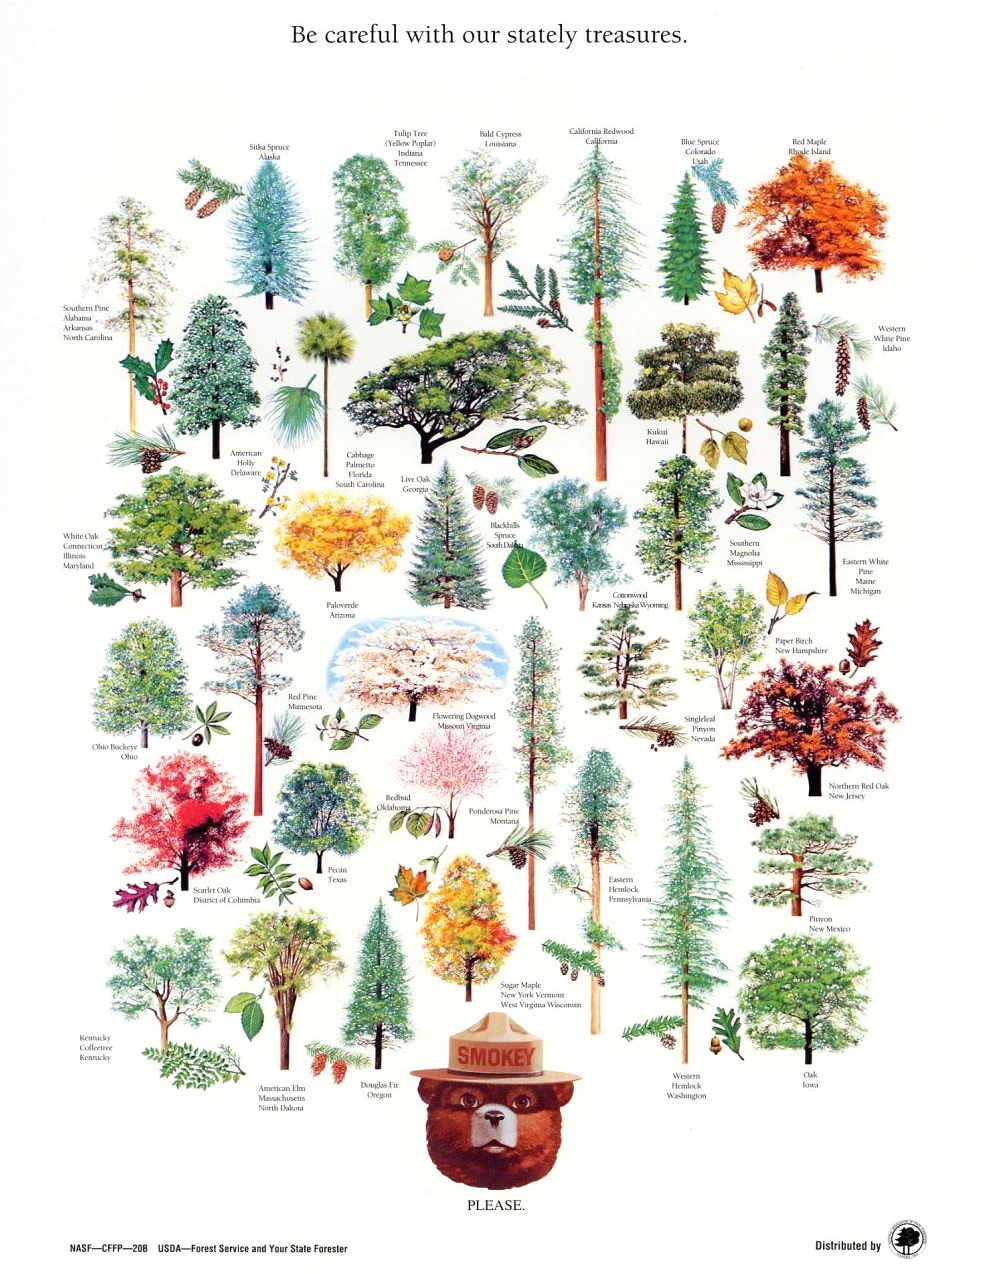 LIST OF STATE TREES